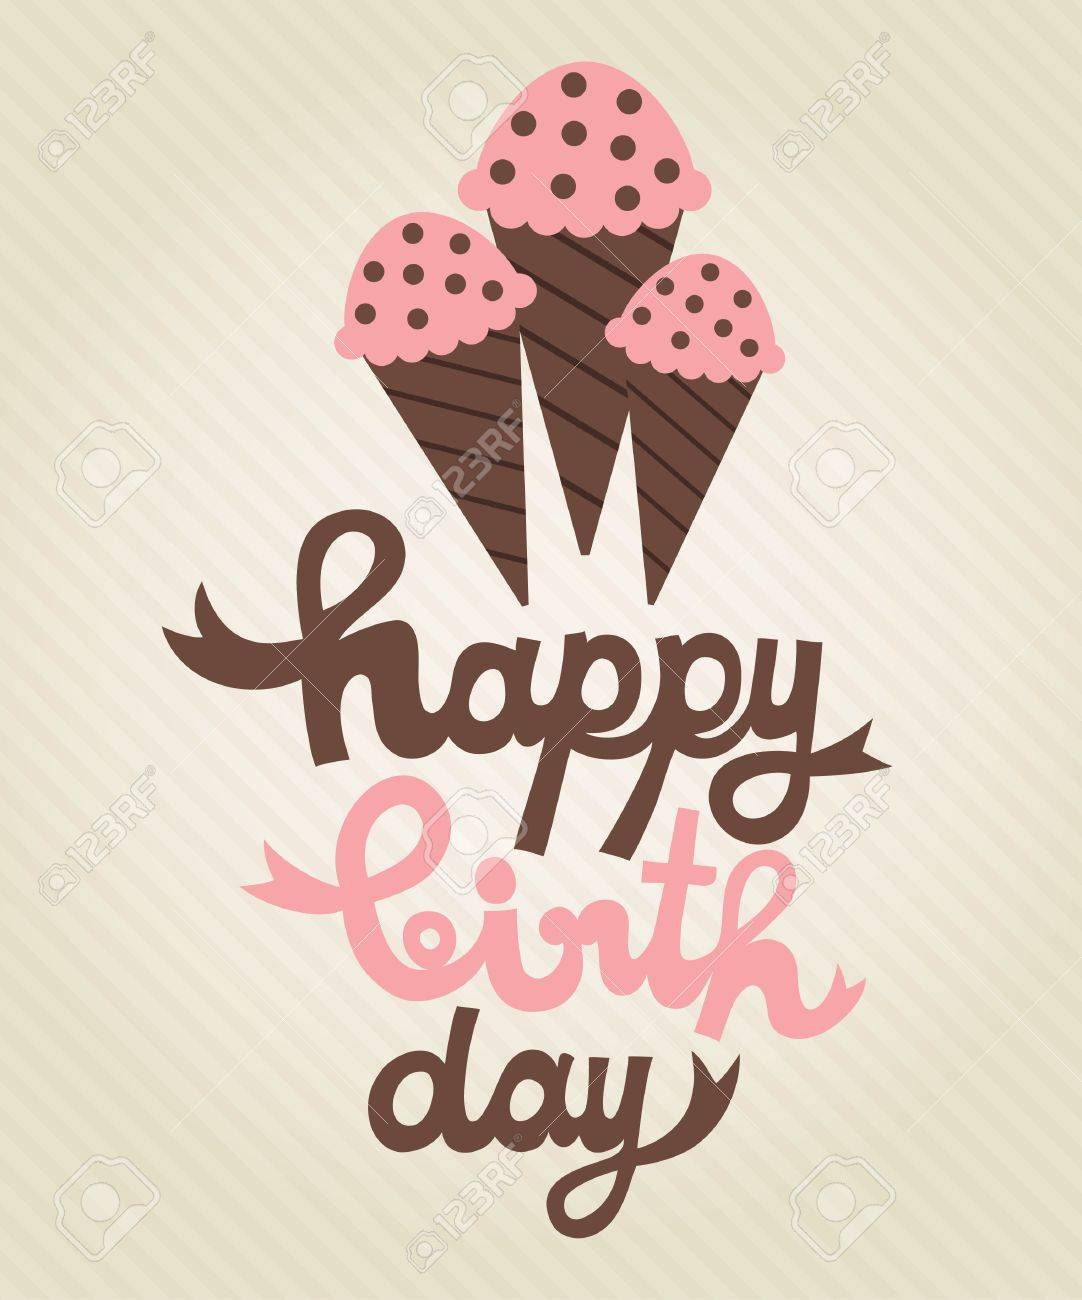 Cute Greeting Card With Ice Cream Vector Illustration Royalty Free